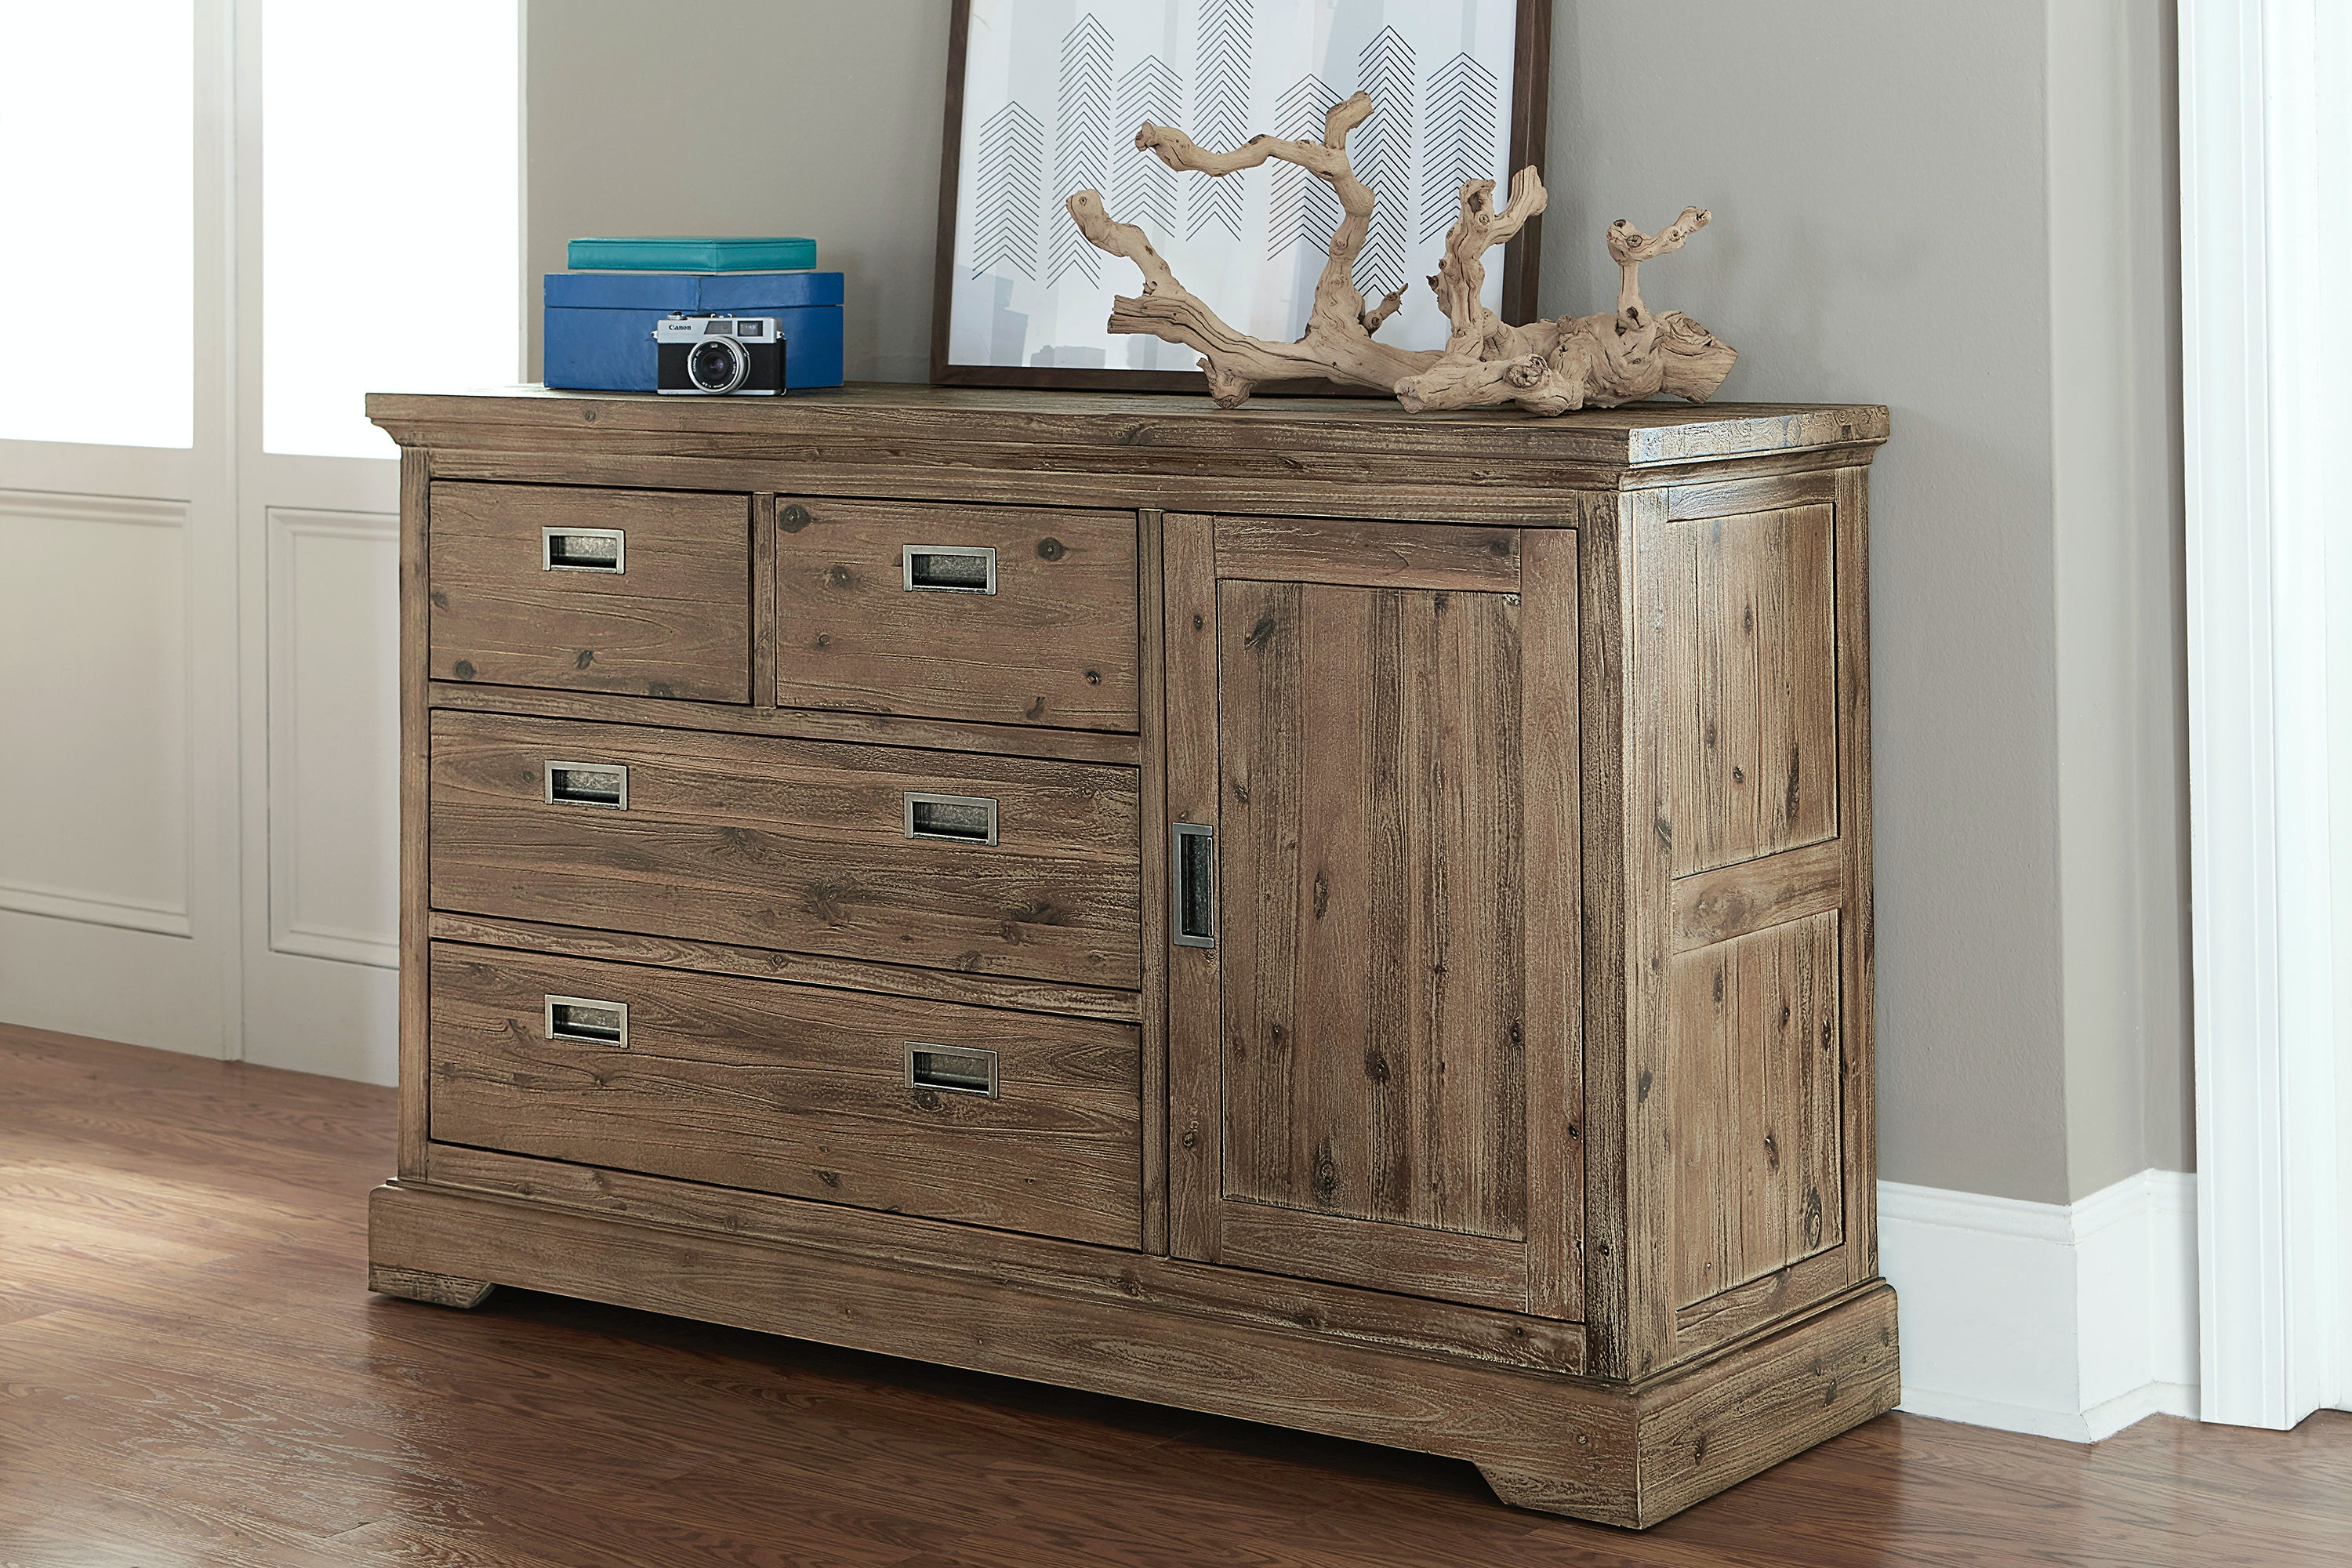 Exceptionnel Hillsdale Kids And Teen Oxford 4 Drawer Dresser With Door 7104 718